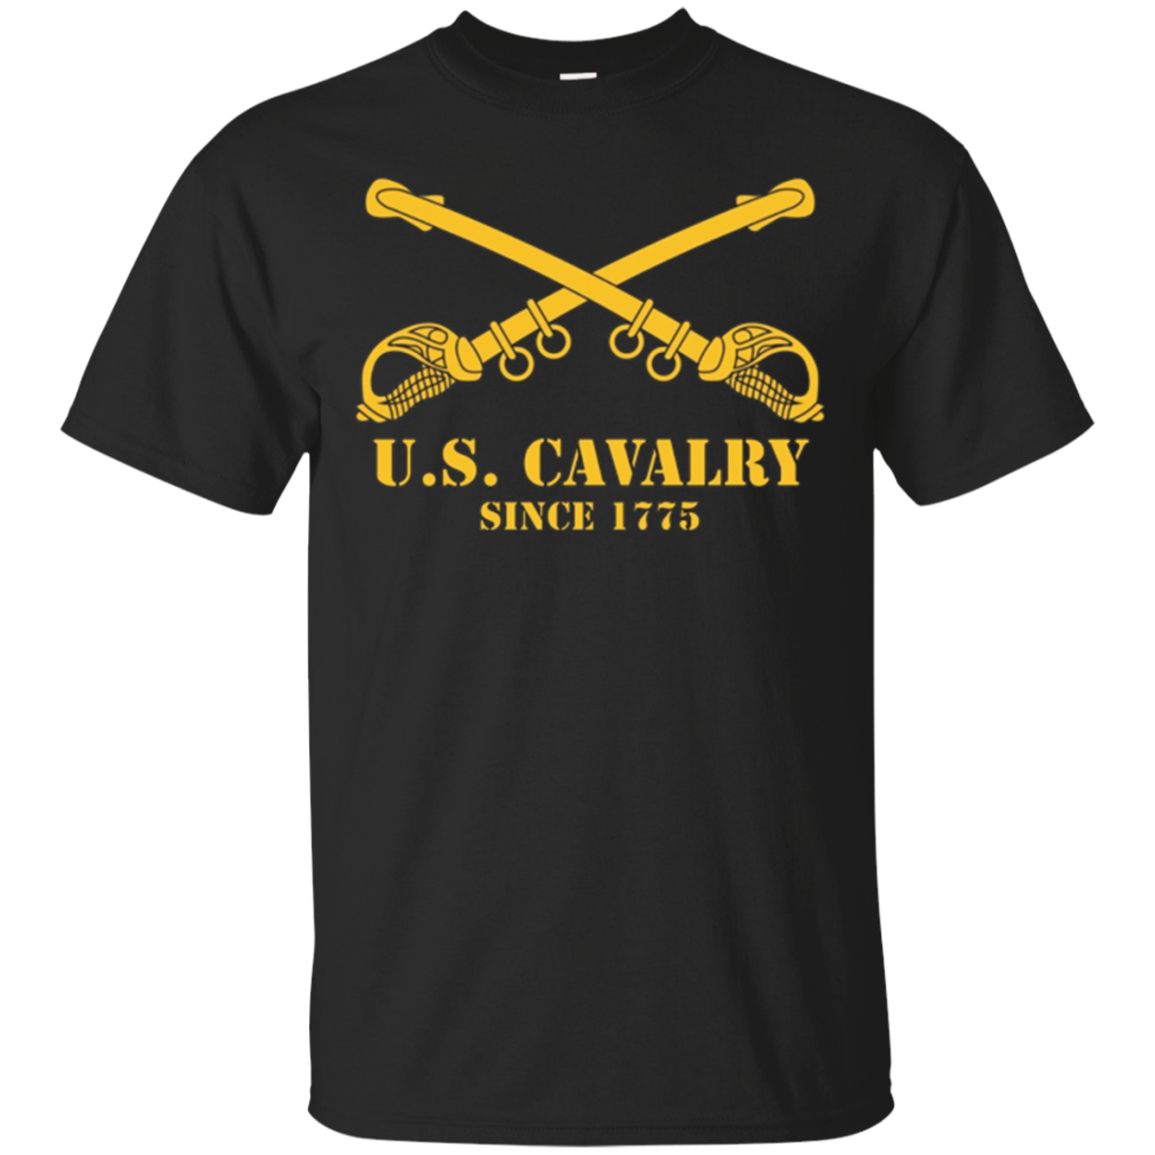 U.S. Army Cavalry, Since 1775 | U.S. Military Pride T-shirt